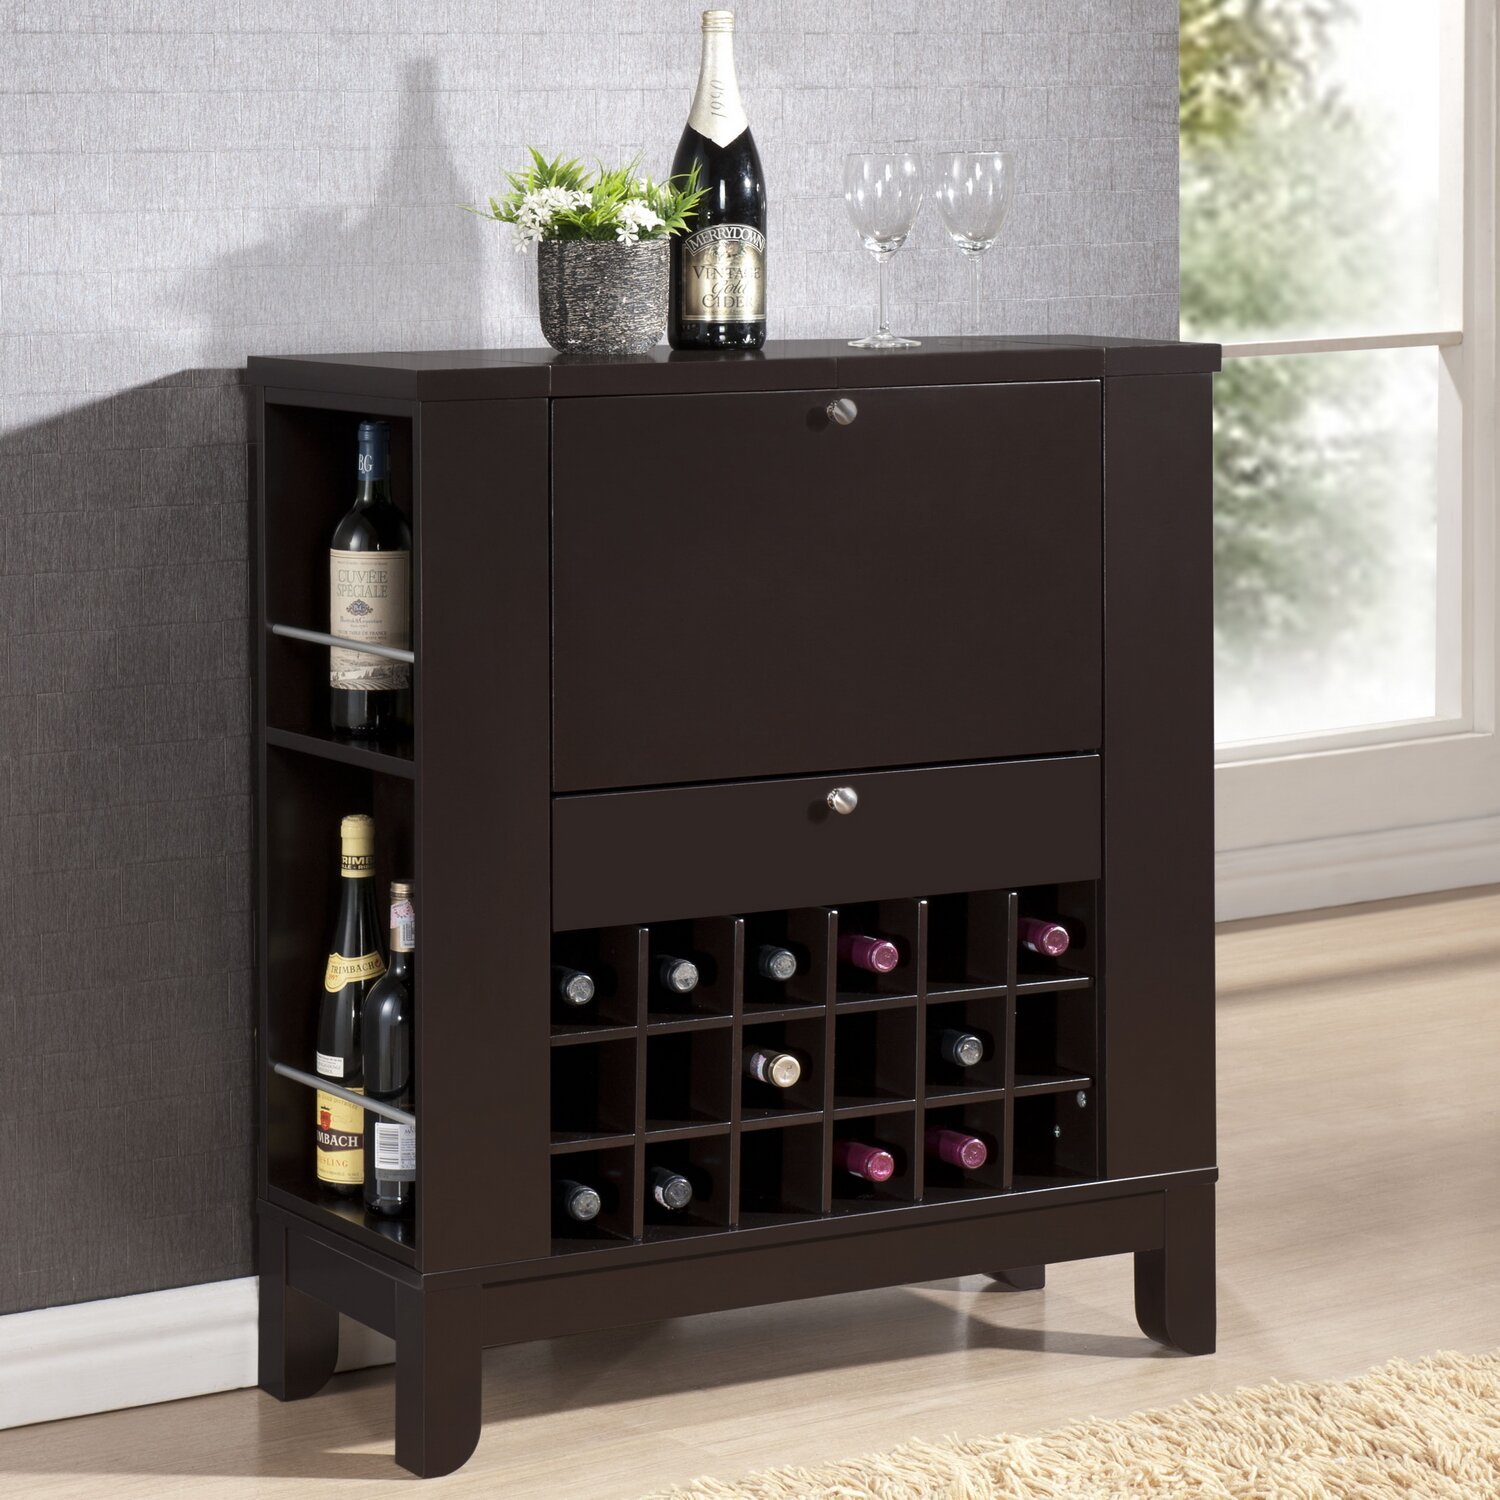 Wholesale interiors baxton studio wine bar reviews wayfair Home wine bar furniture